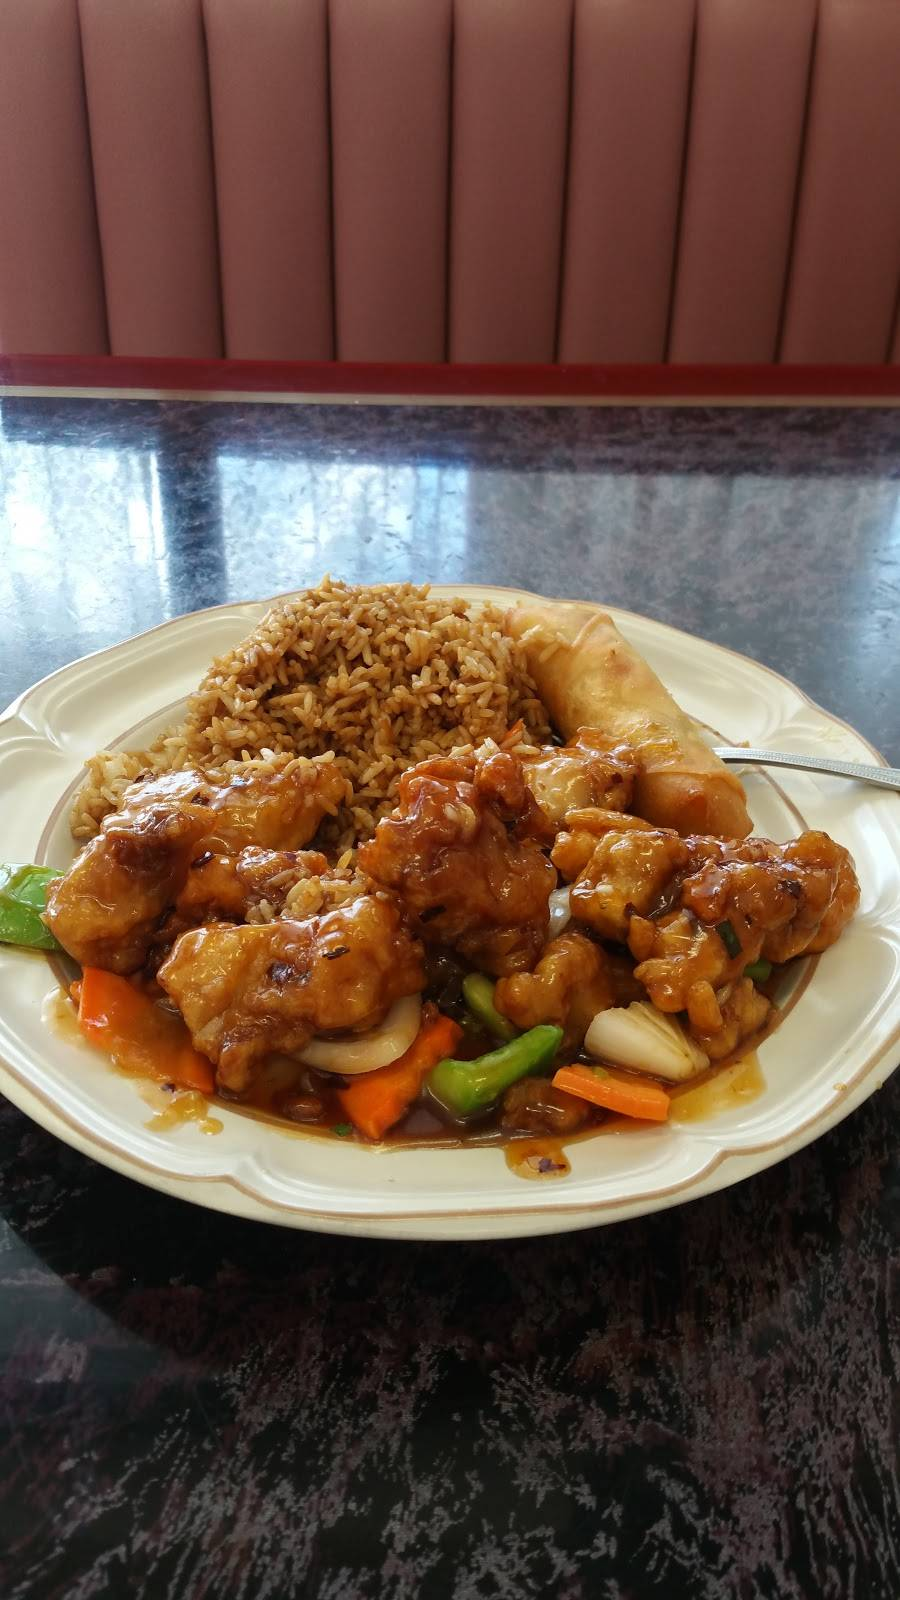 Iron Wok | restaurant | 127 W Oak Knoll Dr, Hampshire, IL 60140, USA | 8476839750 OR +1 847-683-9750